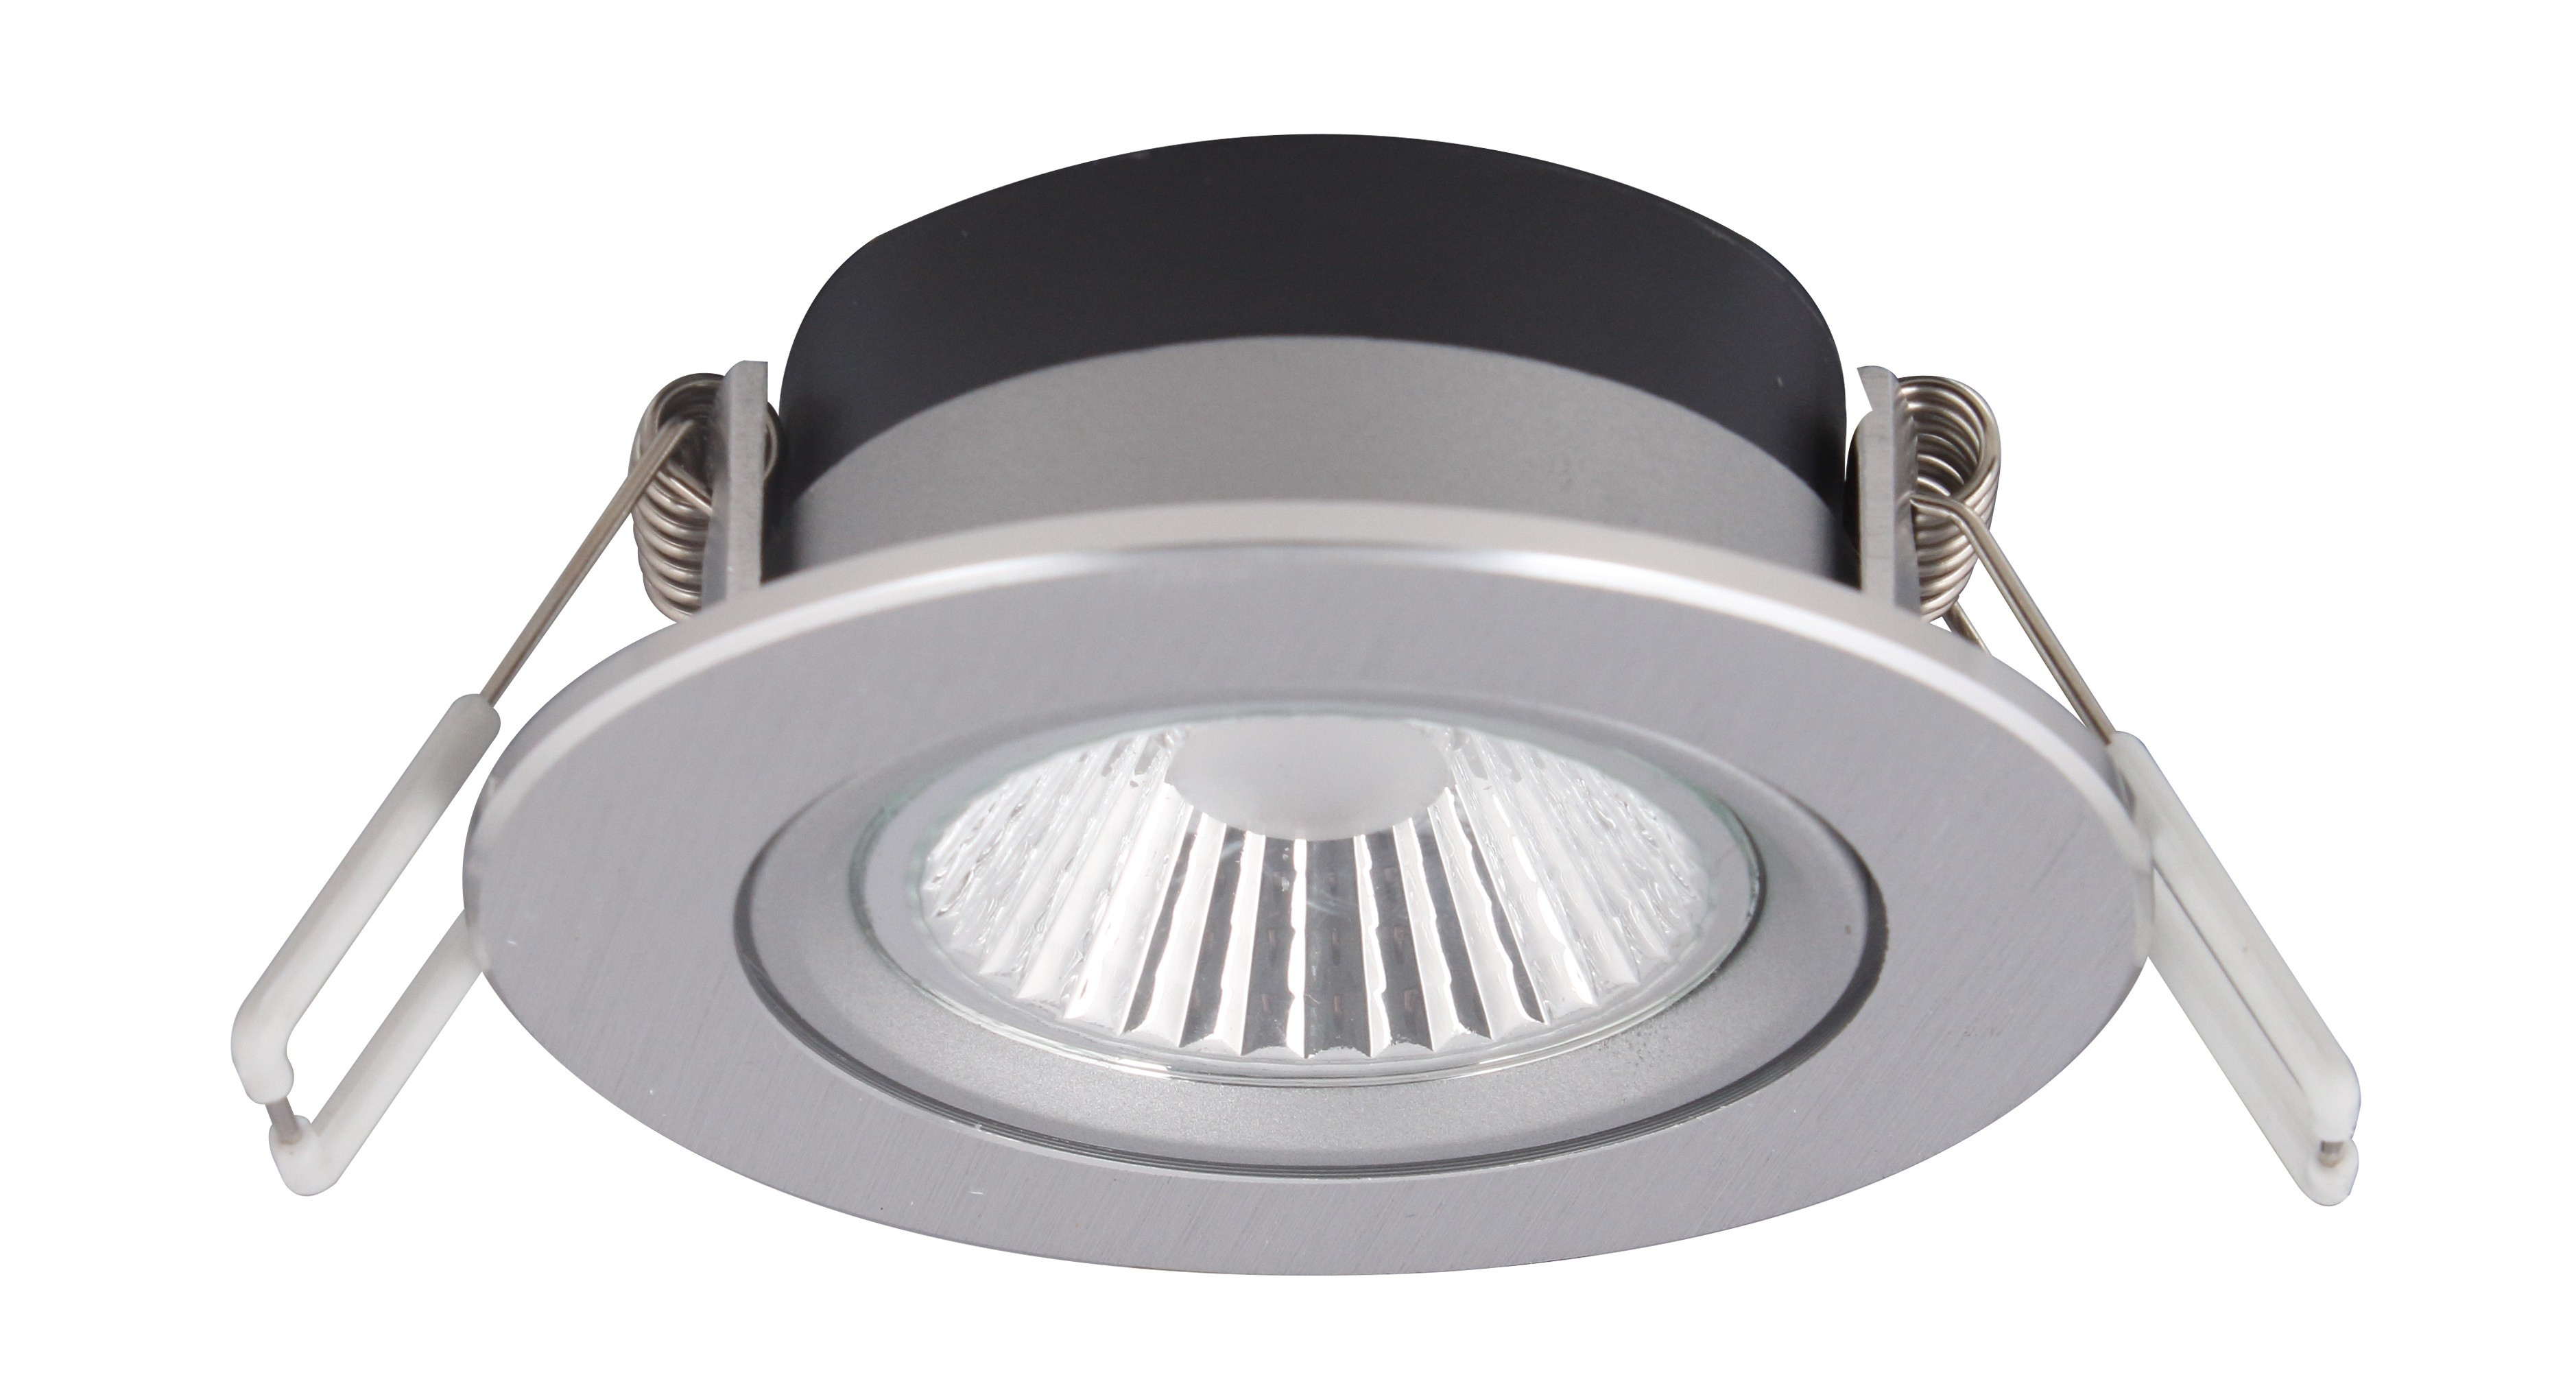 LED Downlight Alu Einbauleuchte 6W 400lm 2700K superflach dimmbar ...